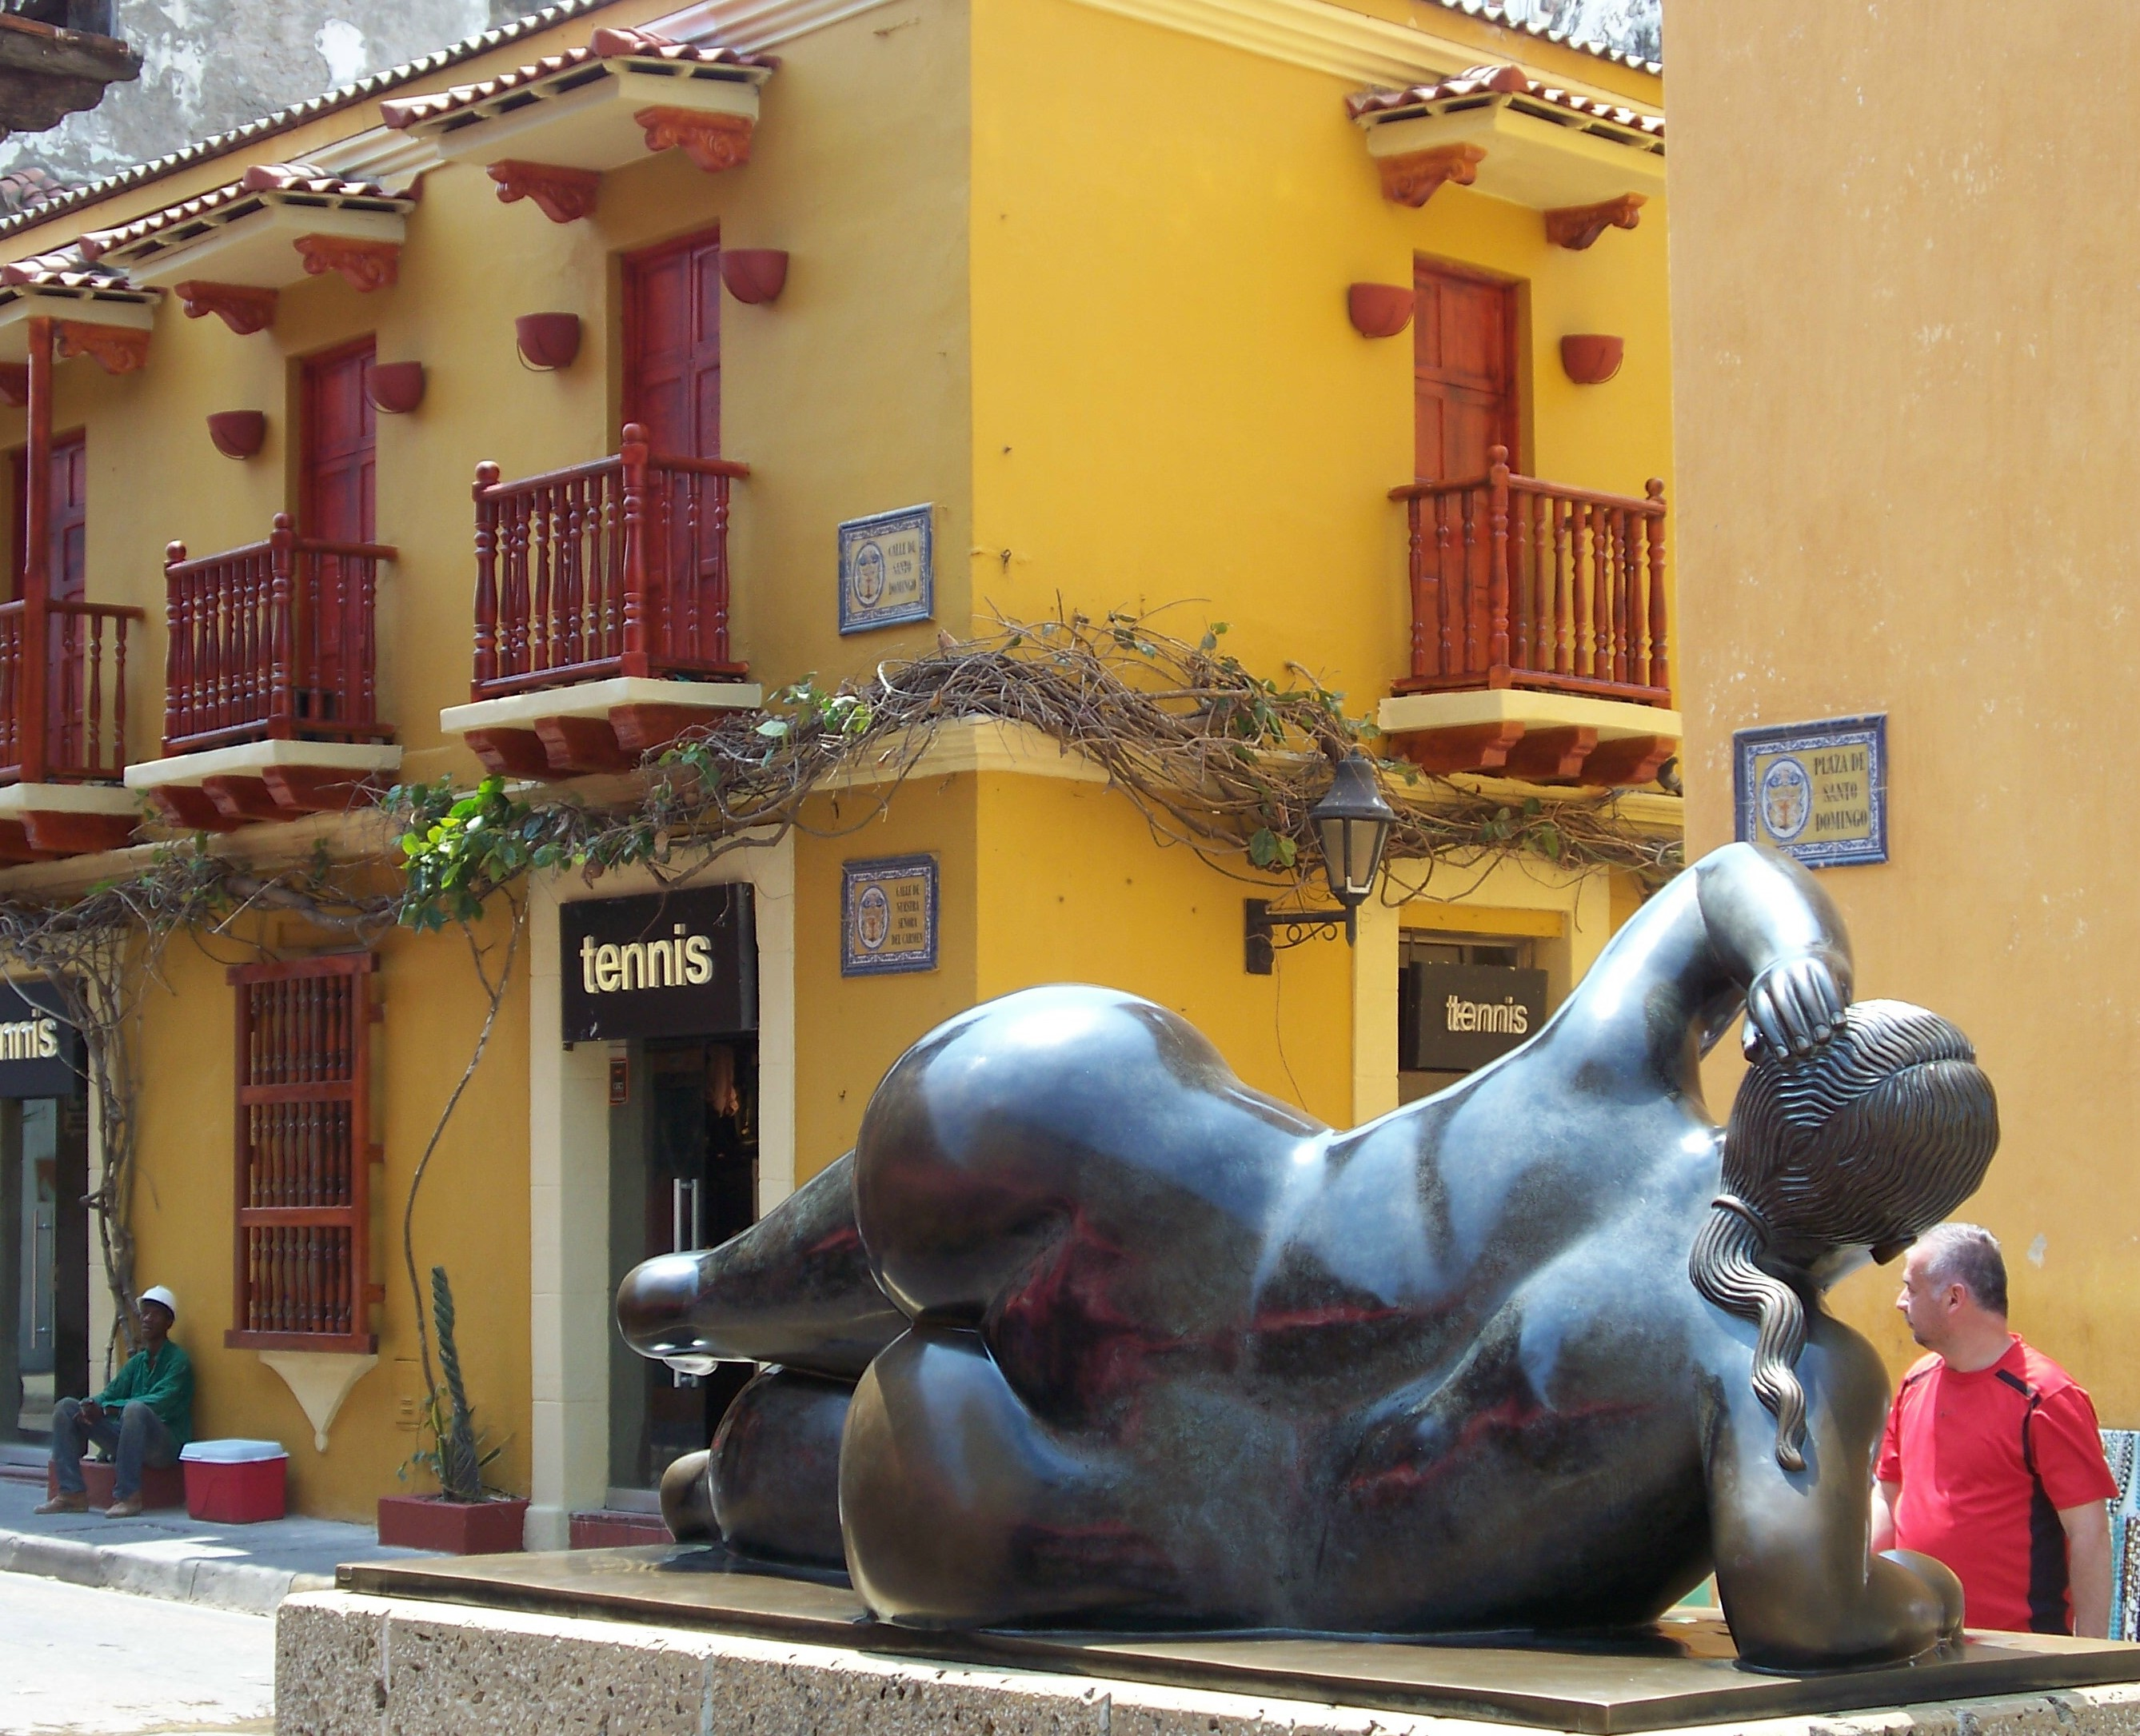 Botero's work is celebrated throughout the city, with sculptures popping up in various spots.